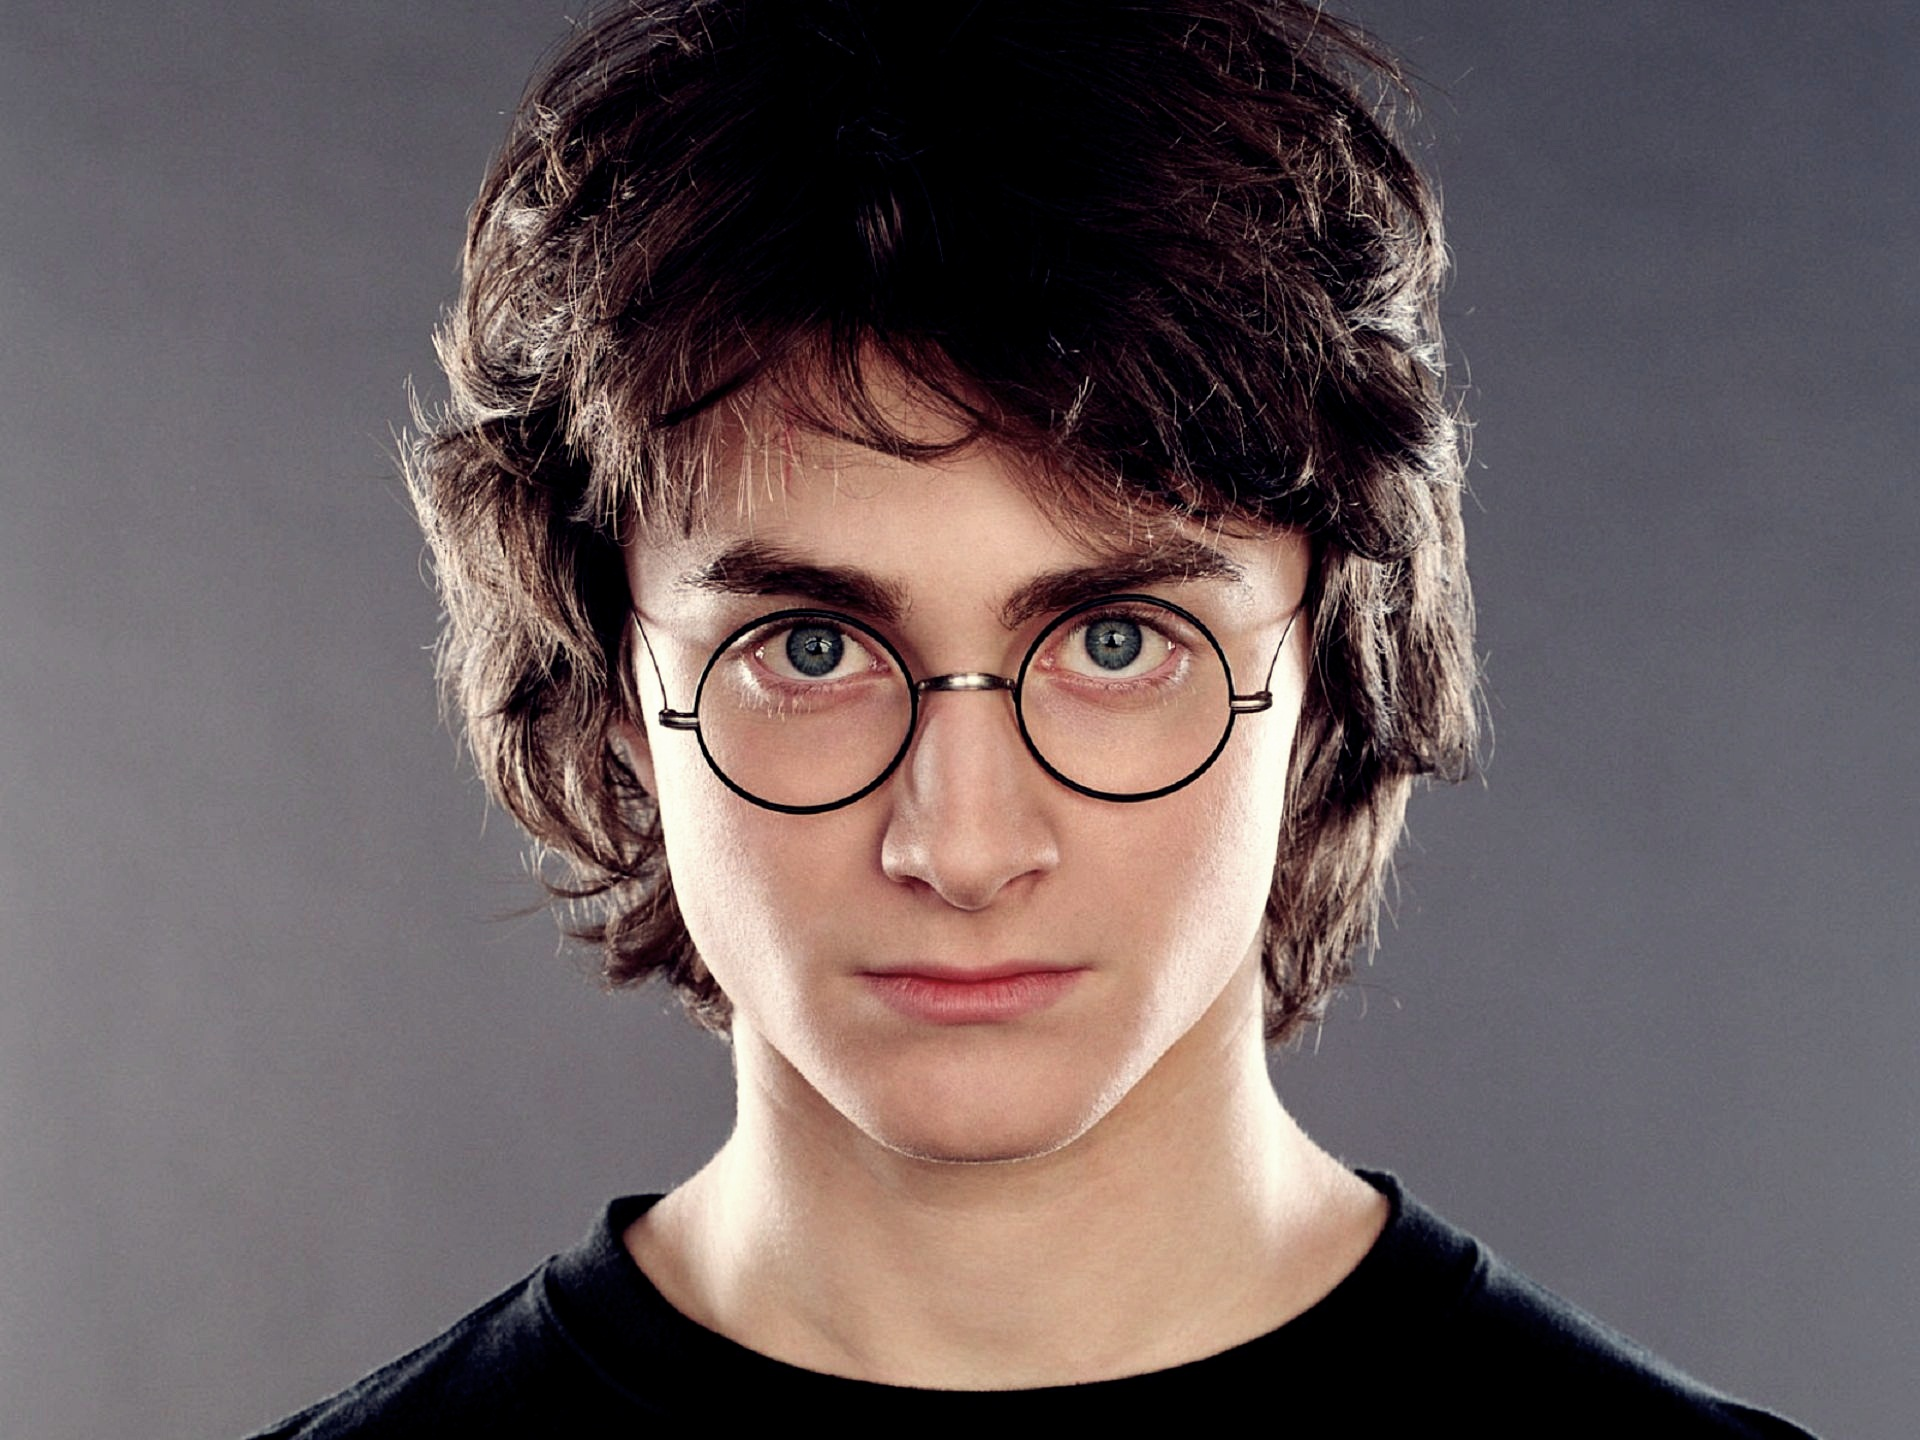 Rumors Daniel Radcliffe To Star In Grand Theft Auto Movie